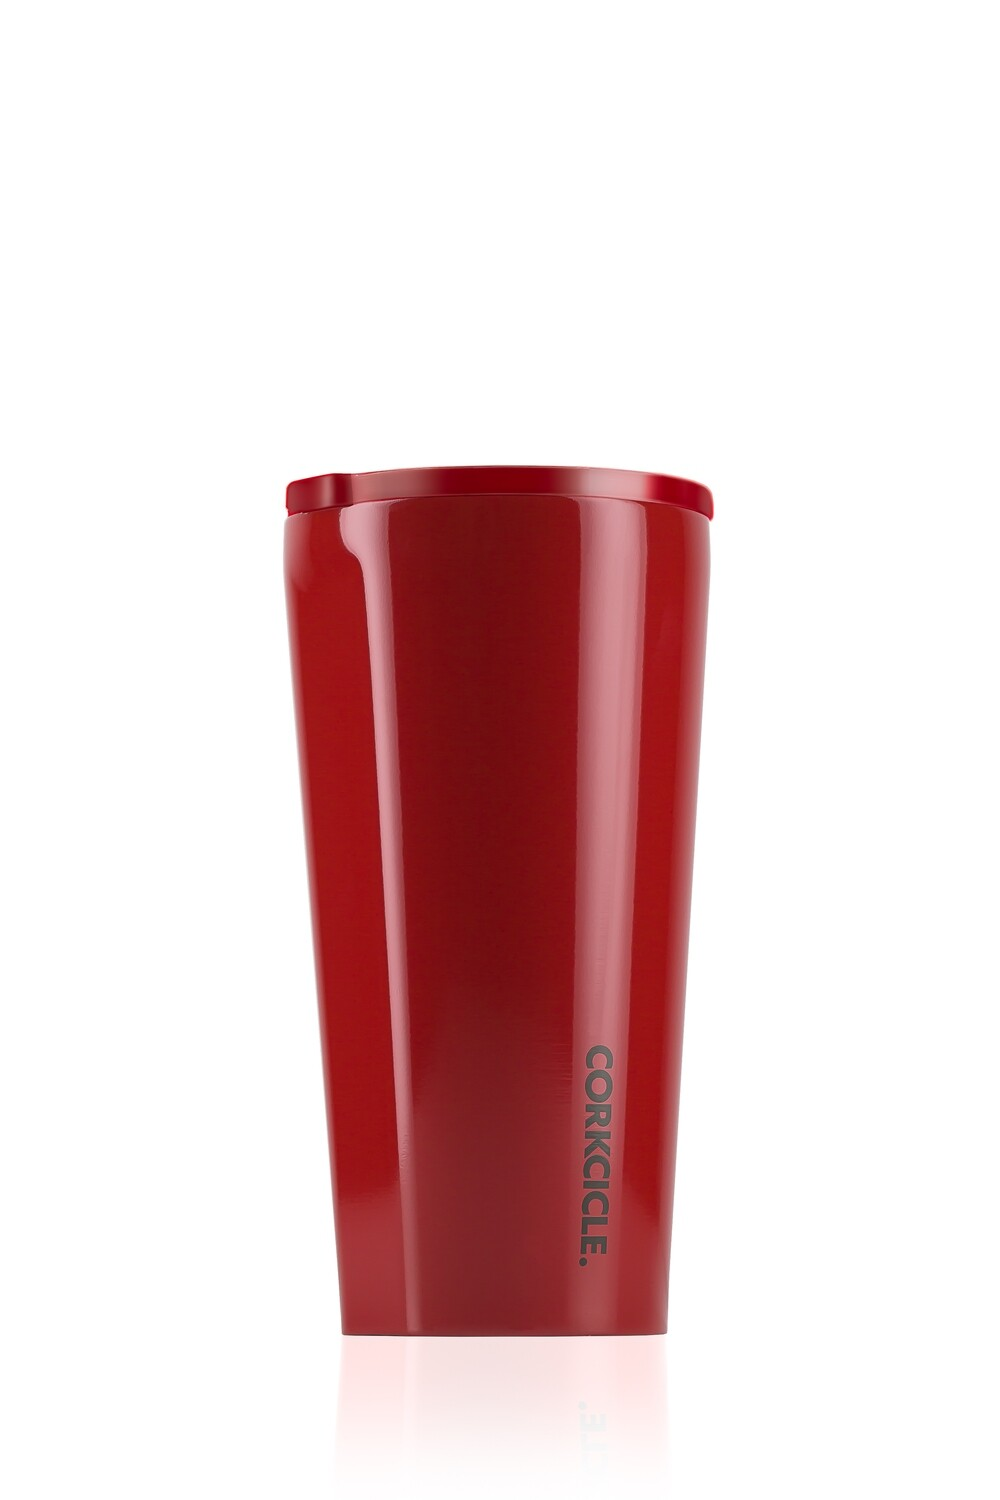 Corkcicle Tumbler (16oz) Dipped Collection